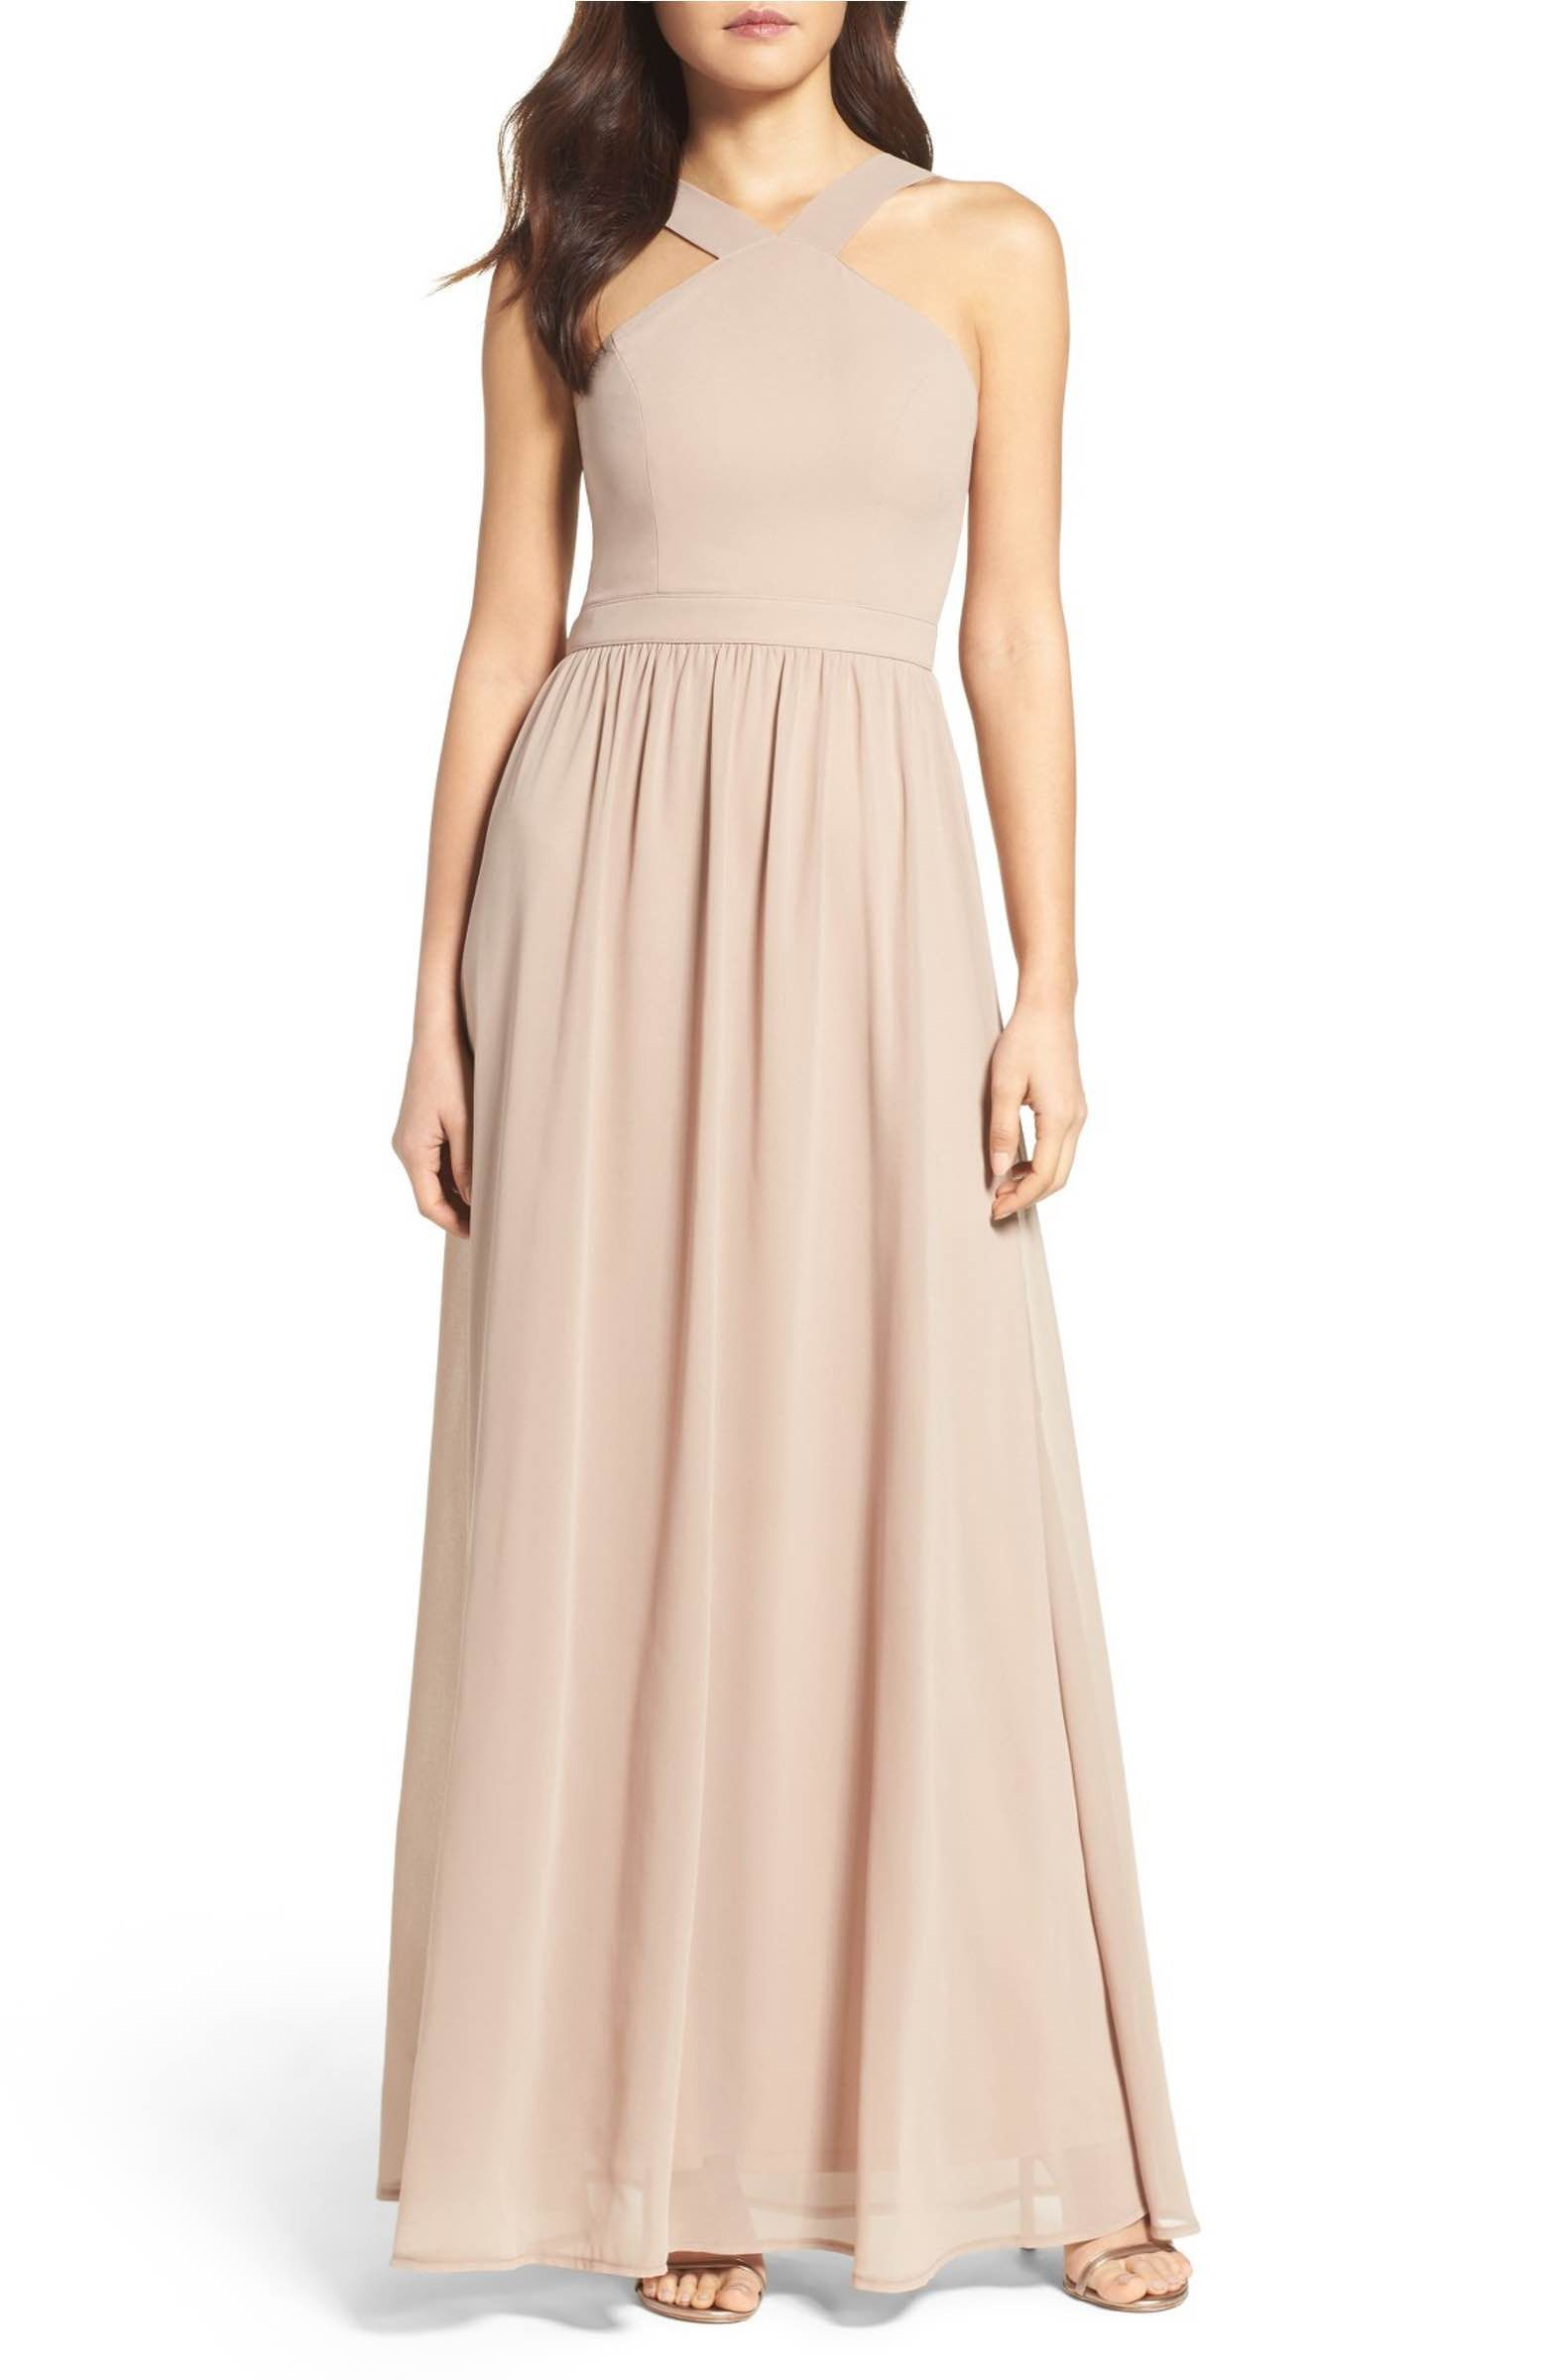 Womens dresses wedding guest  Cross Neck ALine Chiffon Gown  Chiffon gown Gowns and Nordstrom